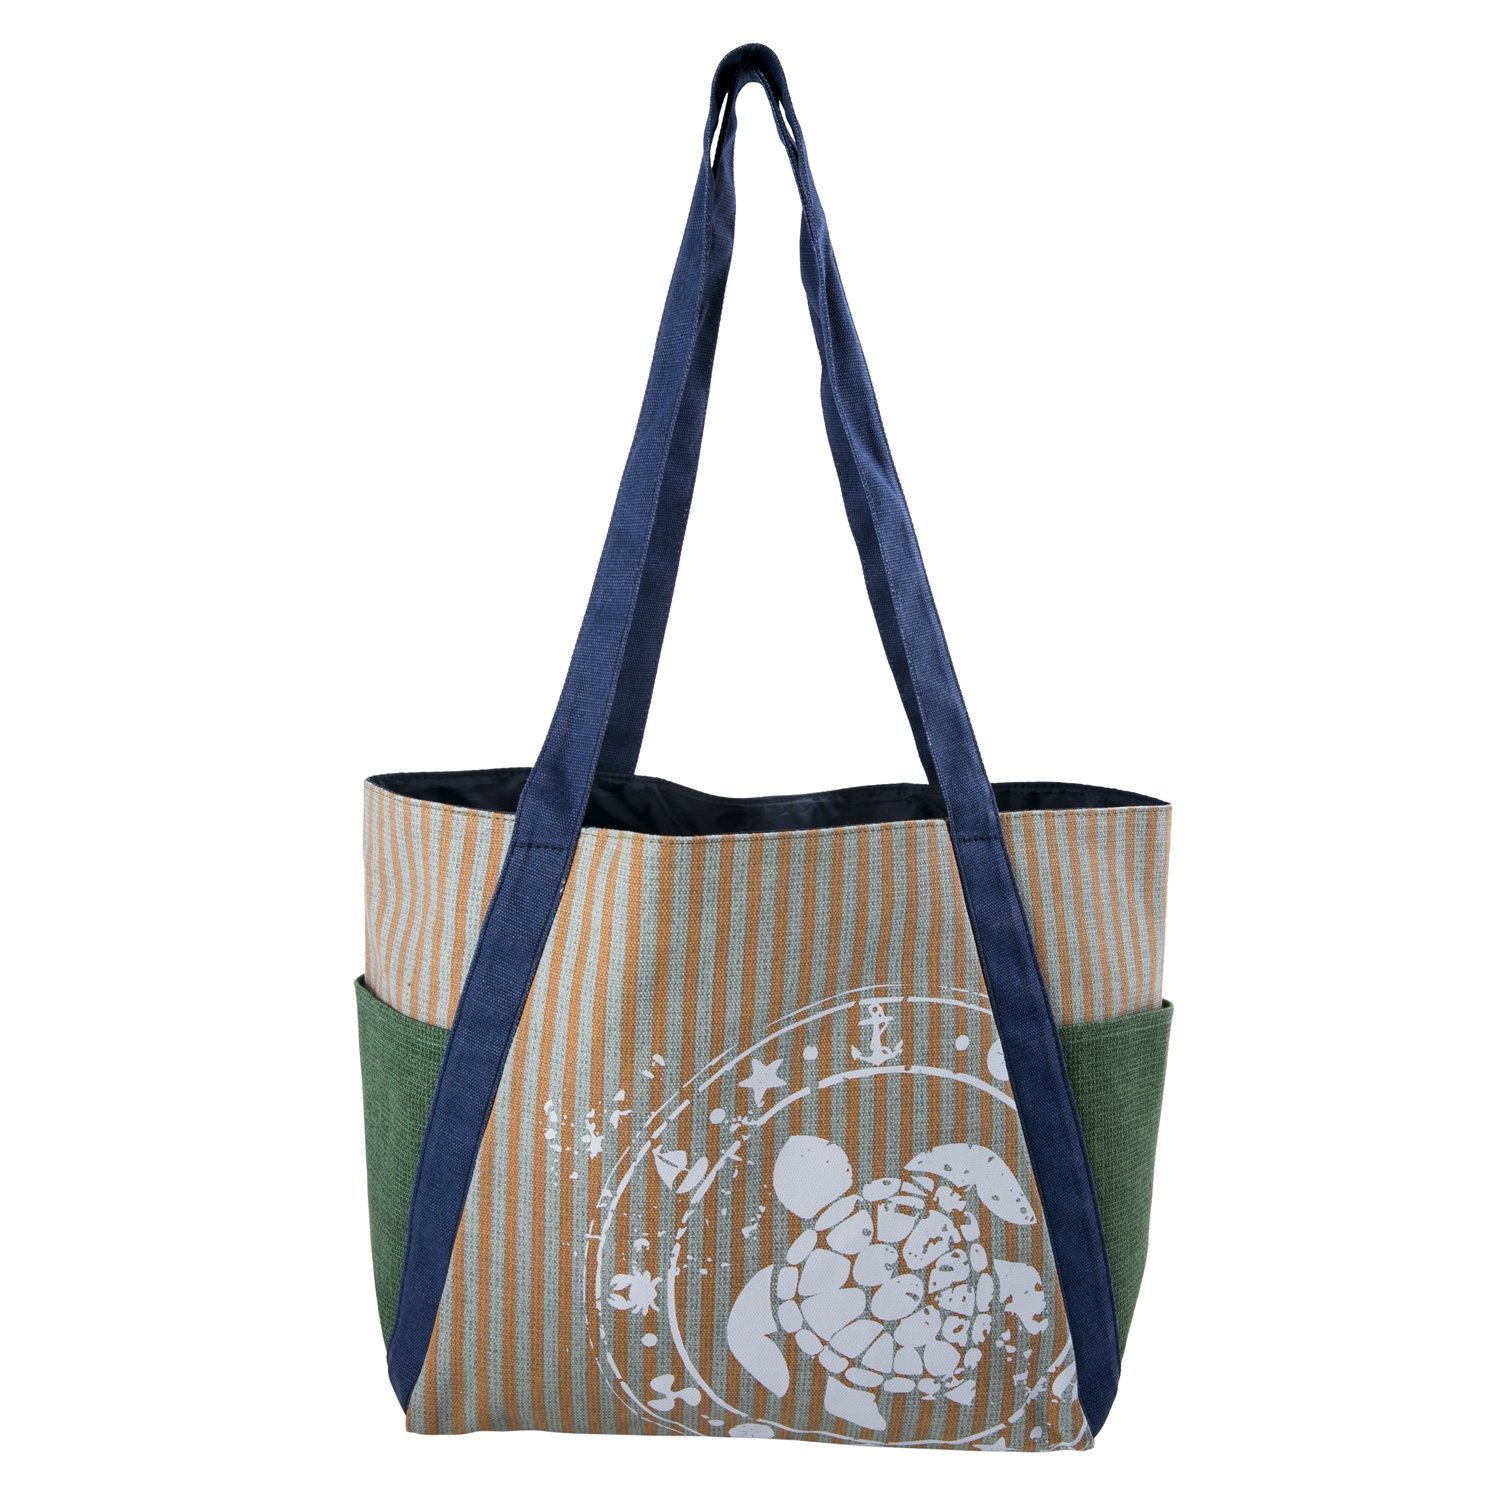 Large Canvas Tote Beach Bag with White Sea Turtle - Beige Blue Green